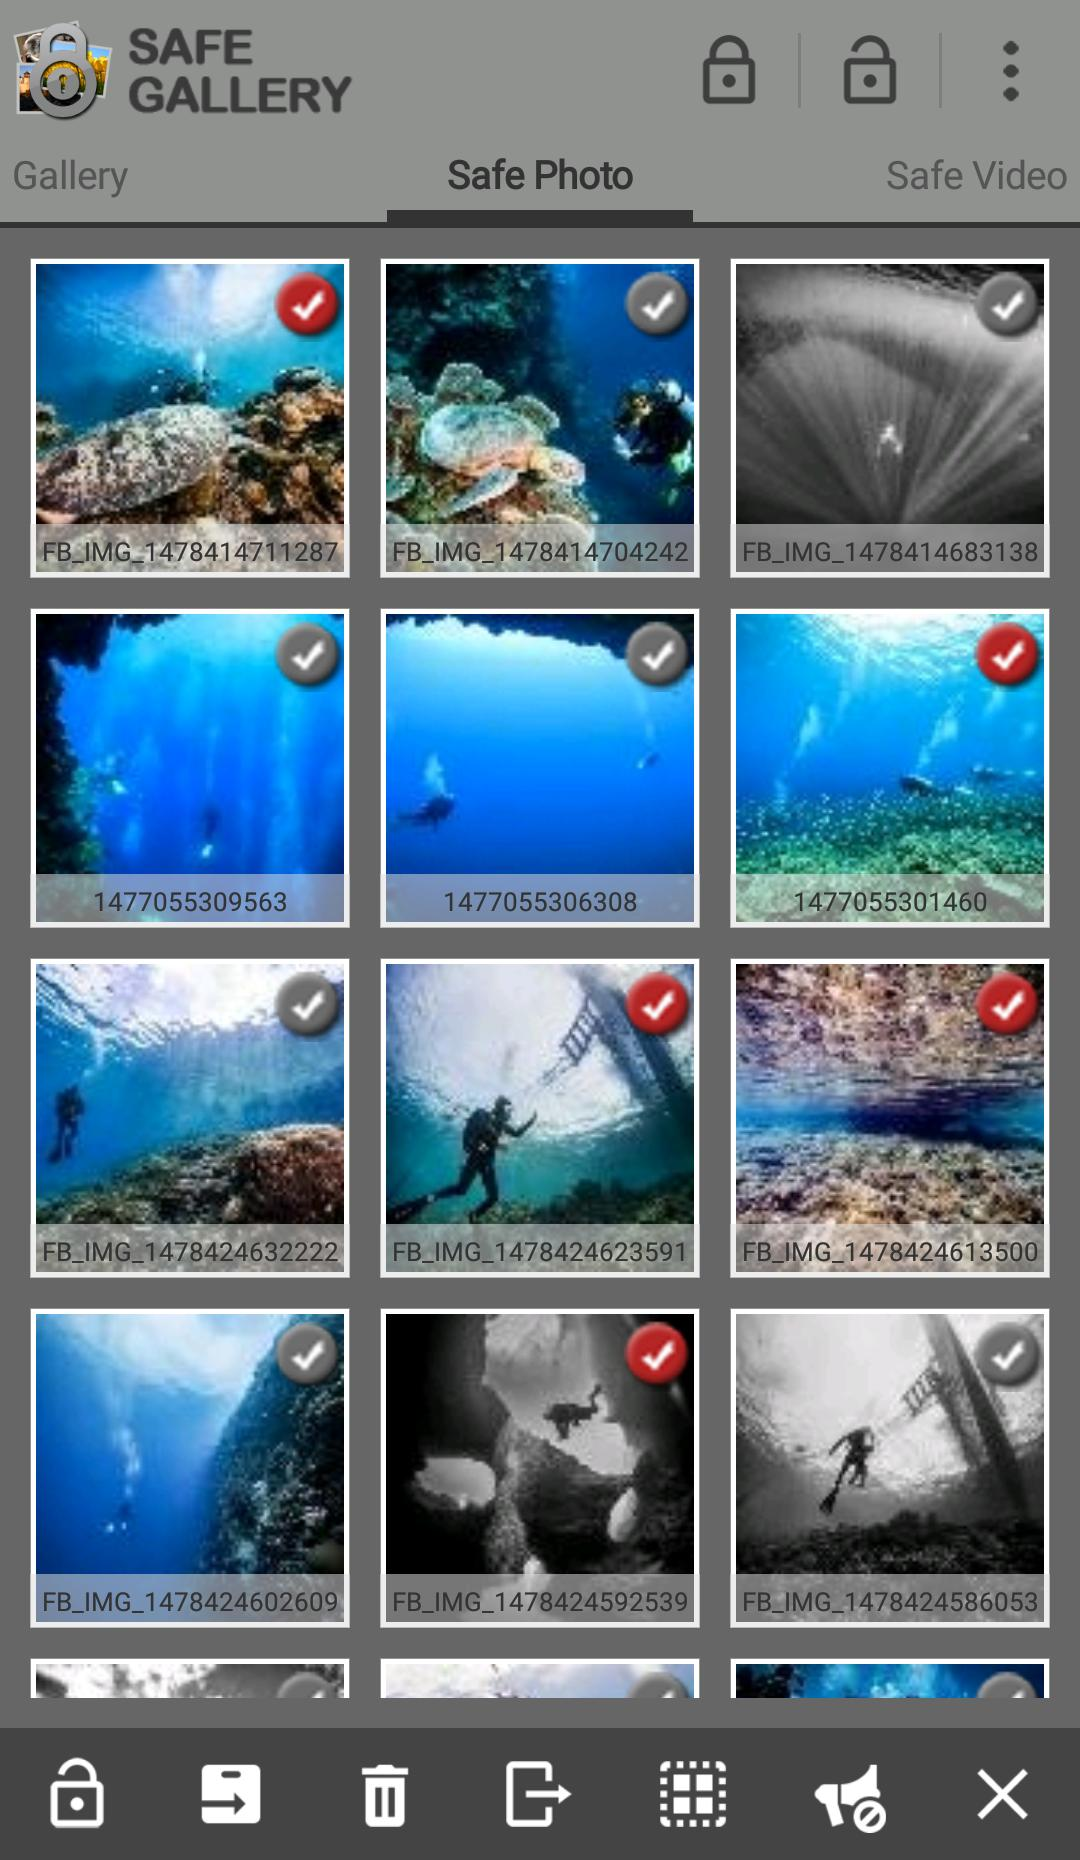 Safe Gallery for Android - APK Download